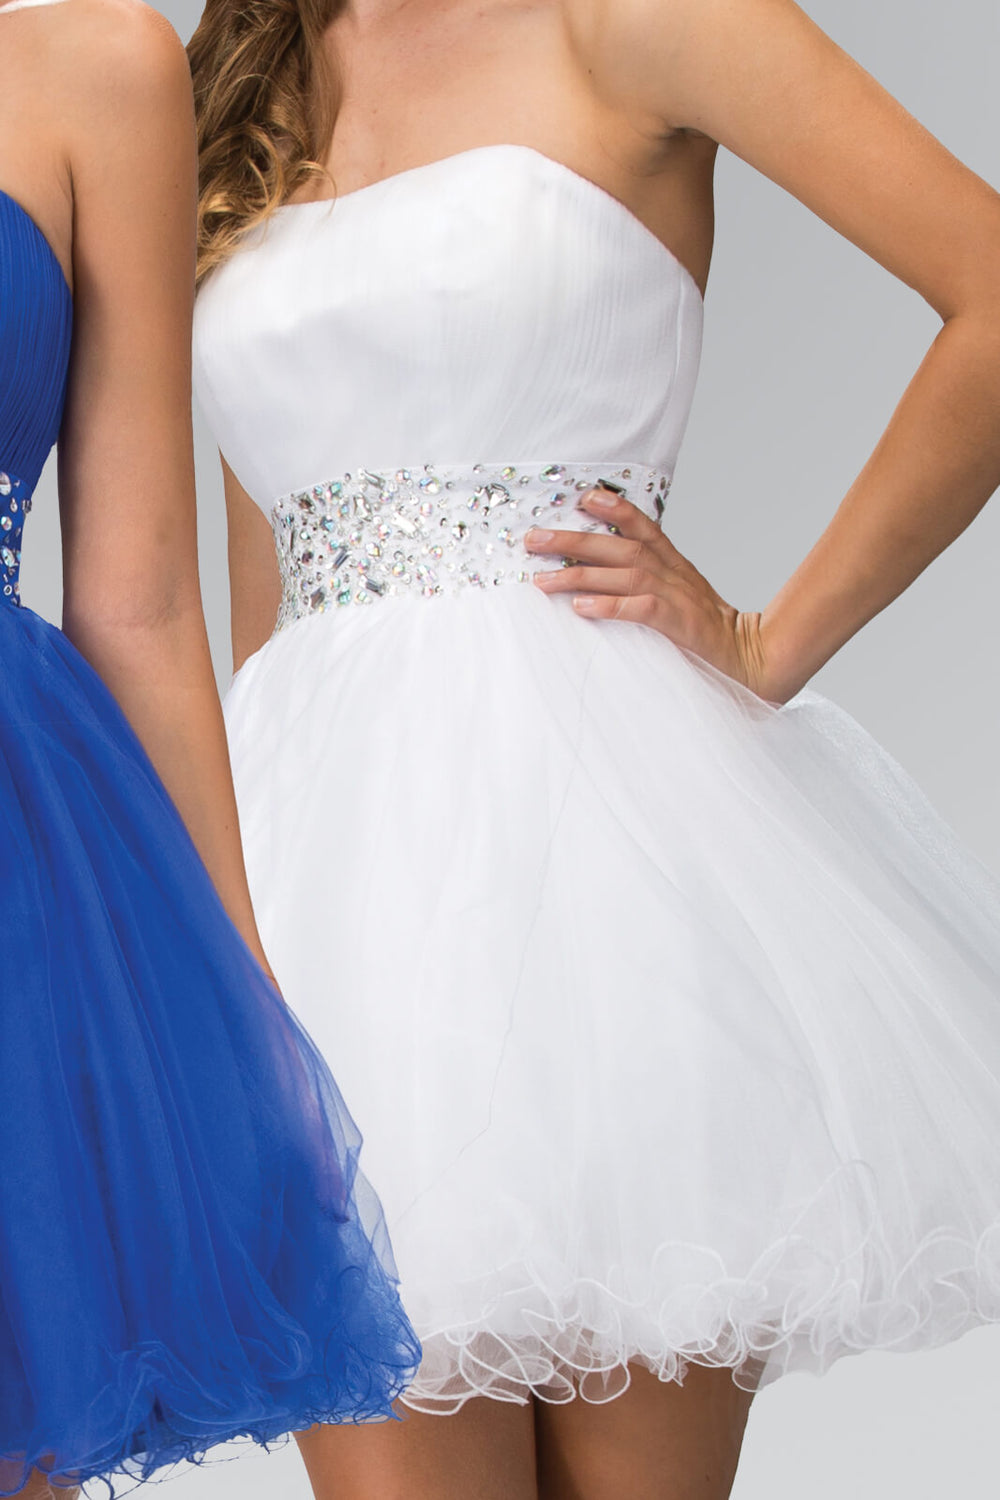 Strapless Sweetheart Prom Short Dress - The Dress Outlet White